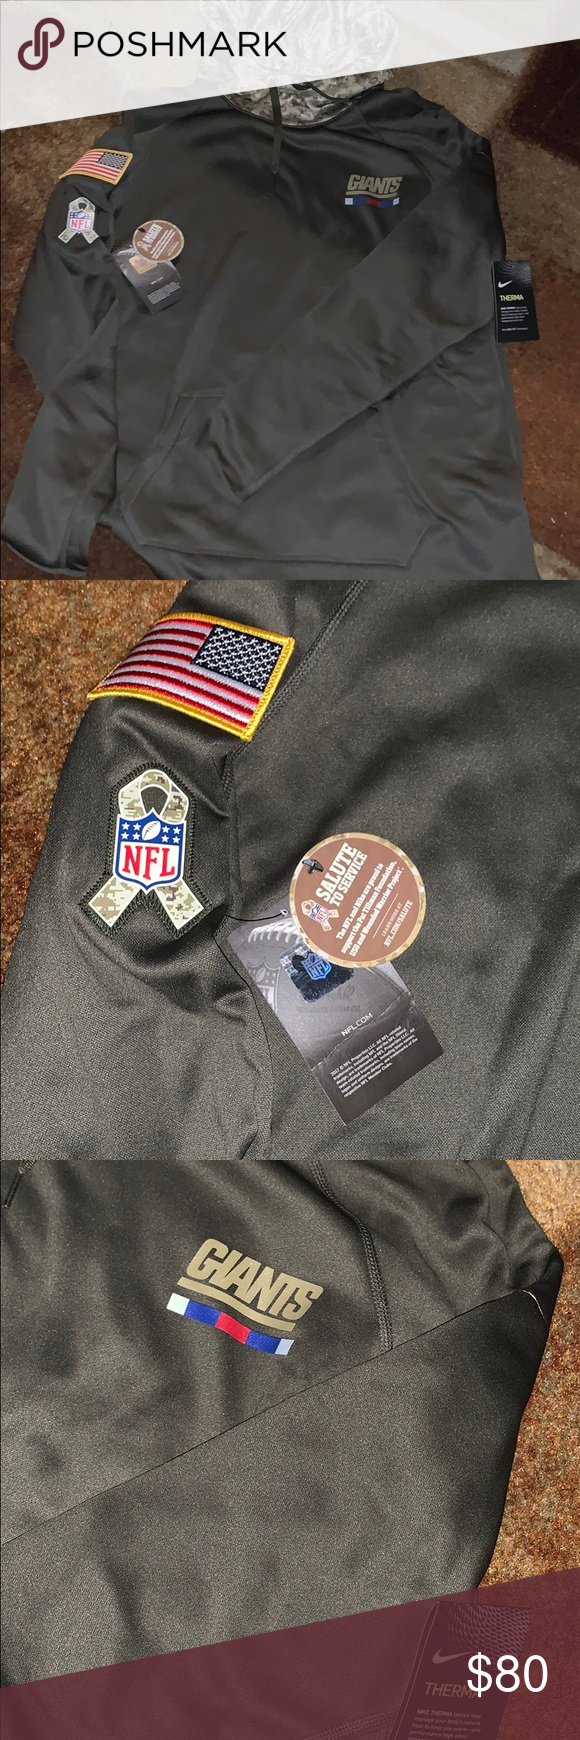 New NY Giants Salute To Service Hoodie New NY Giants Salute To Service Hoodie Size: Large  Color: Green Tan Red White Blue Brand New Nike Tops Sweatshirts & Hoodies #salutetoservice New NY Giants Salute To Service Hoodie New NY Giants Salute To Service Hoodie Size: Large  Color: Green Tan Red White Blue Brand New Nike Tops Sweatshirts & Hoodies #salutetoservice New NY Giants Salute To Service Hoodie New NY Giants Salute To Service Hoodie Size: Large  Color: Green Tan Red White Blue Brand New Nik #salutetoservice